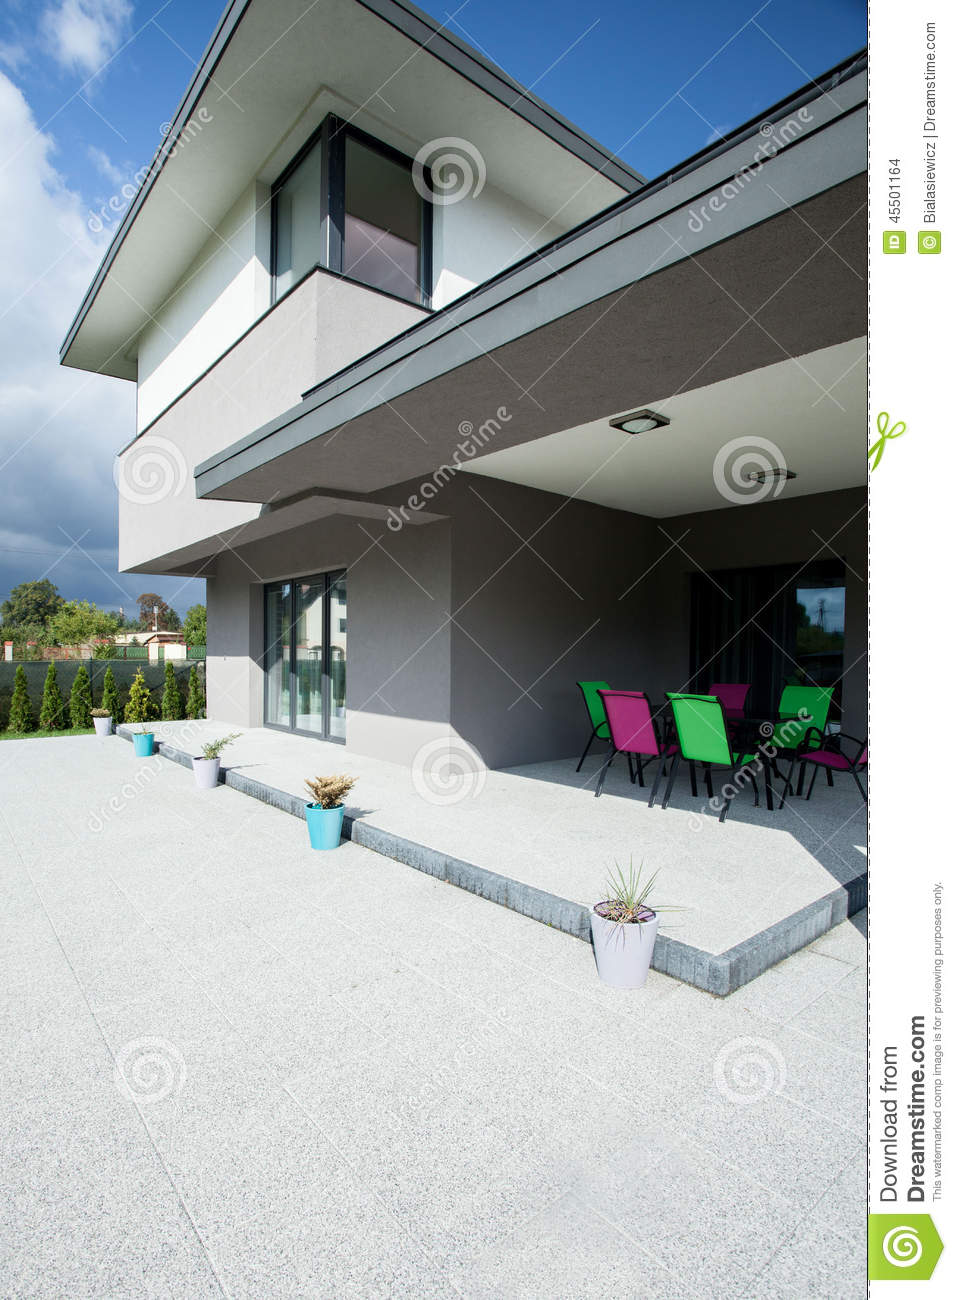 Terrace in a luxurious house